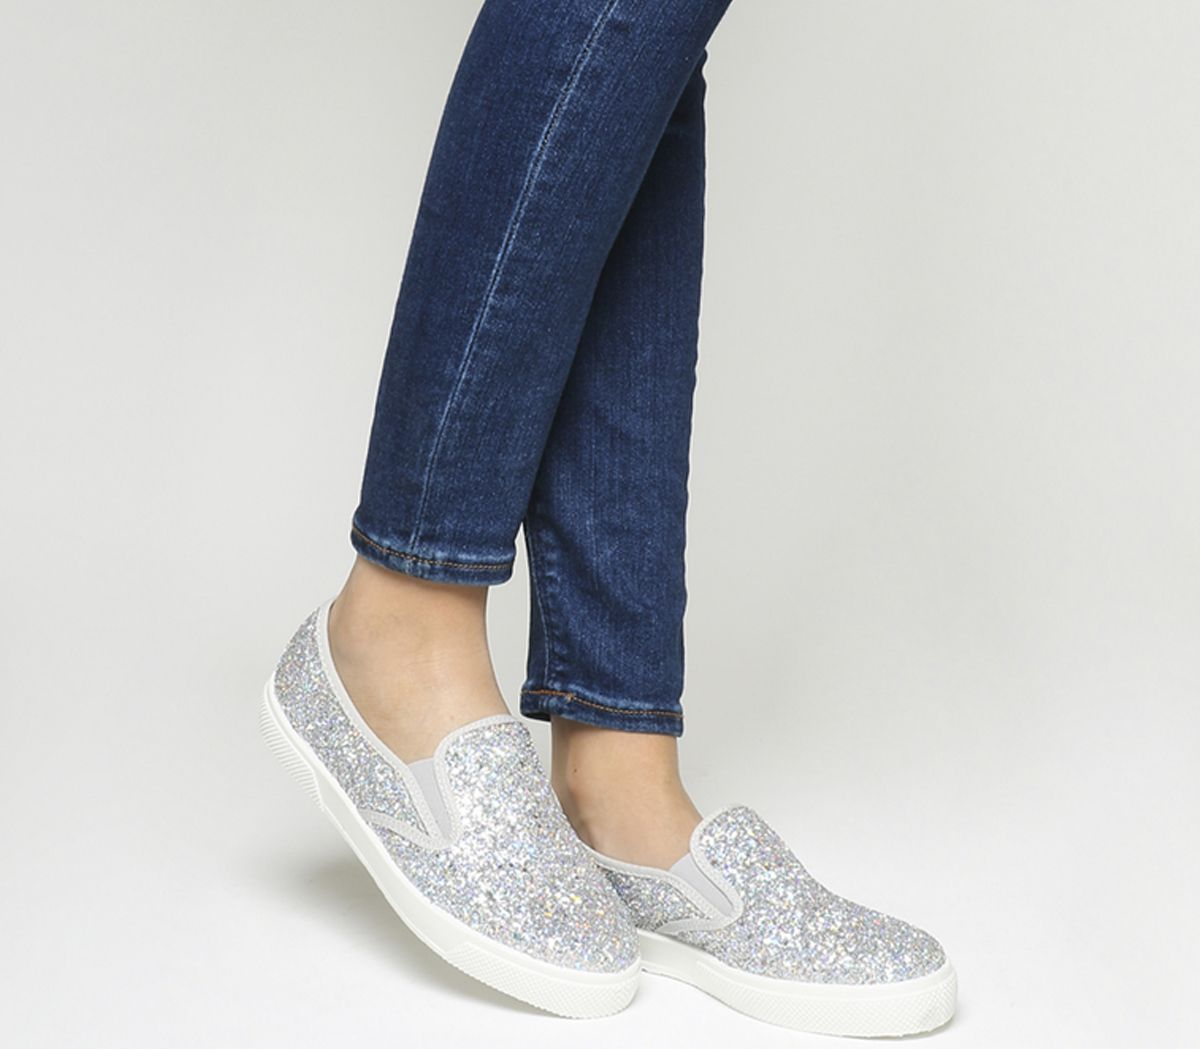 f7d02662f750f8 Office Kicker Slip On Trainers New Silver Holographic Glitter - Flats